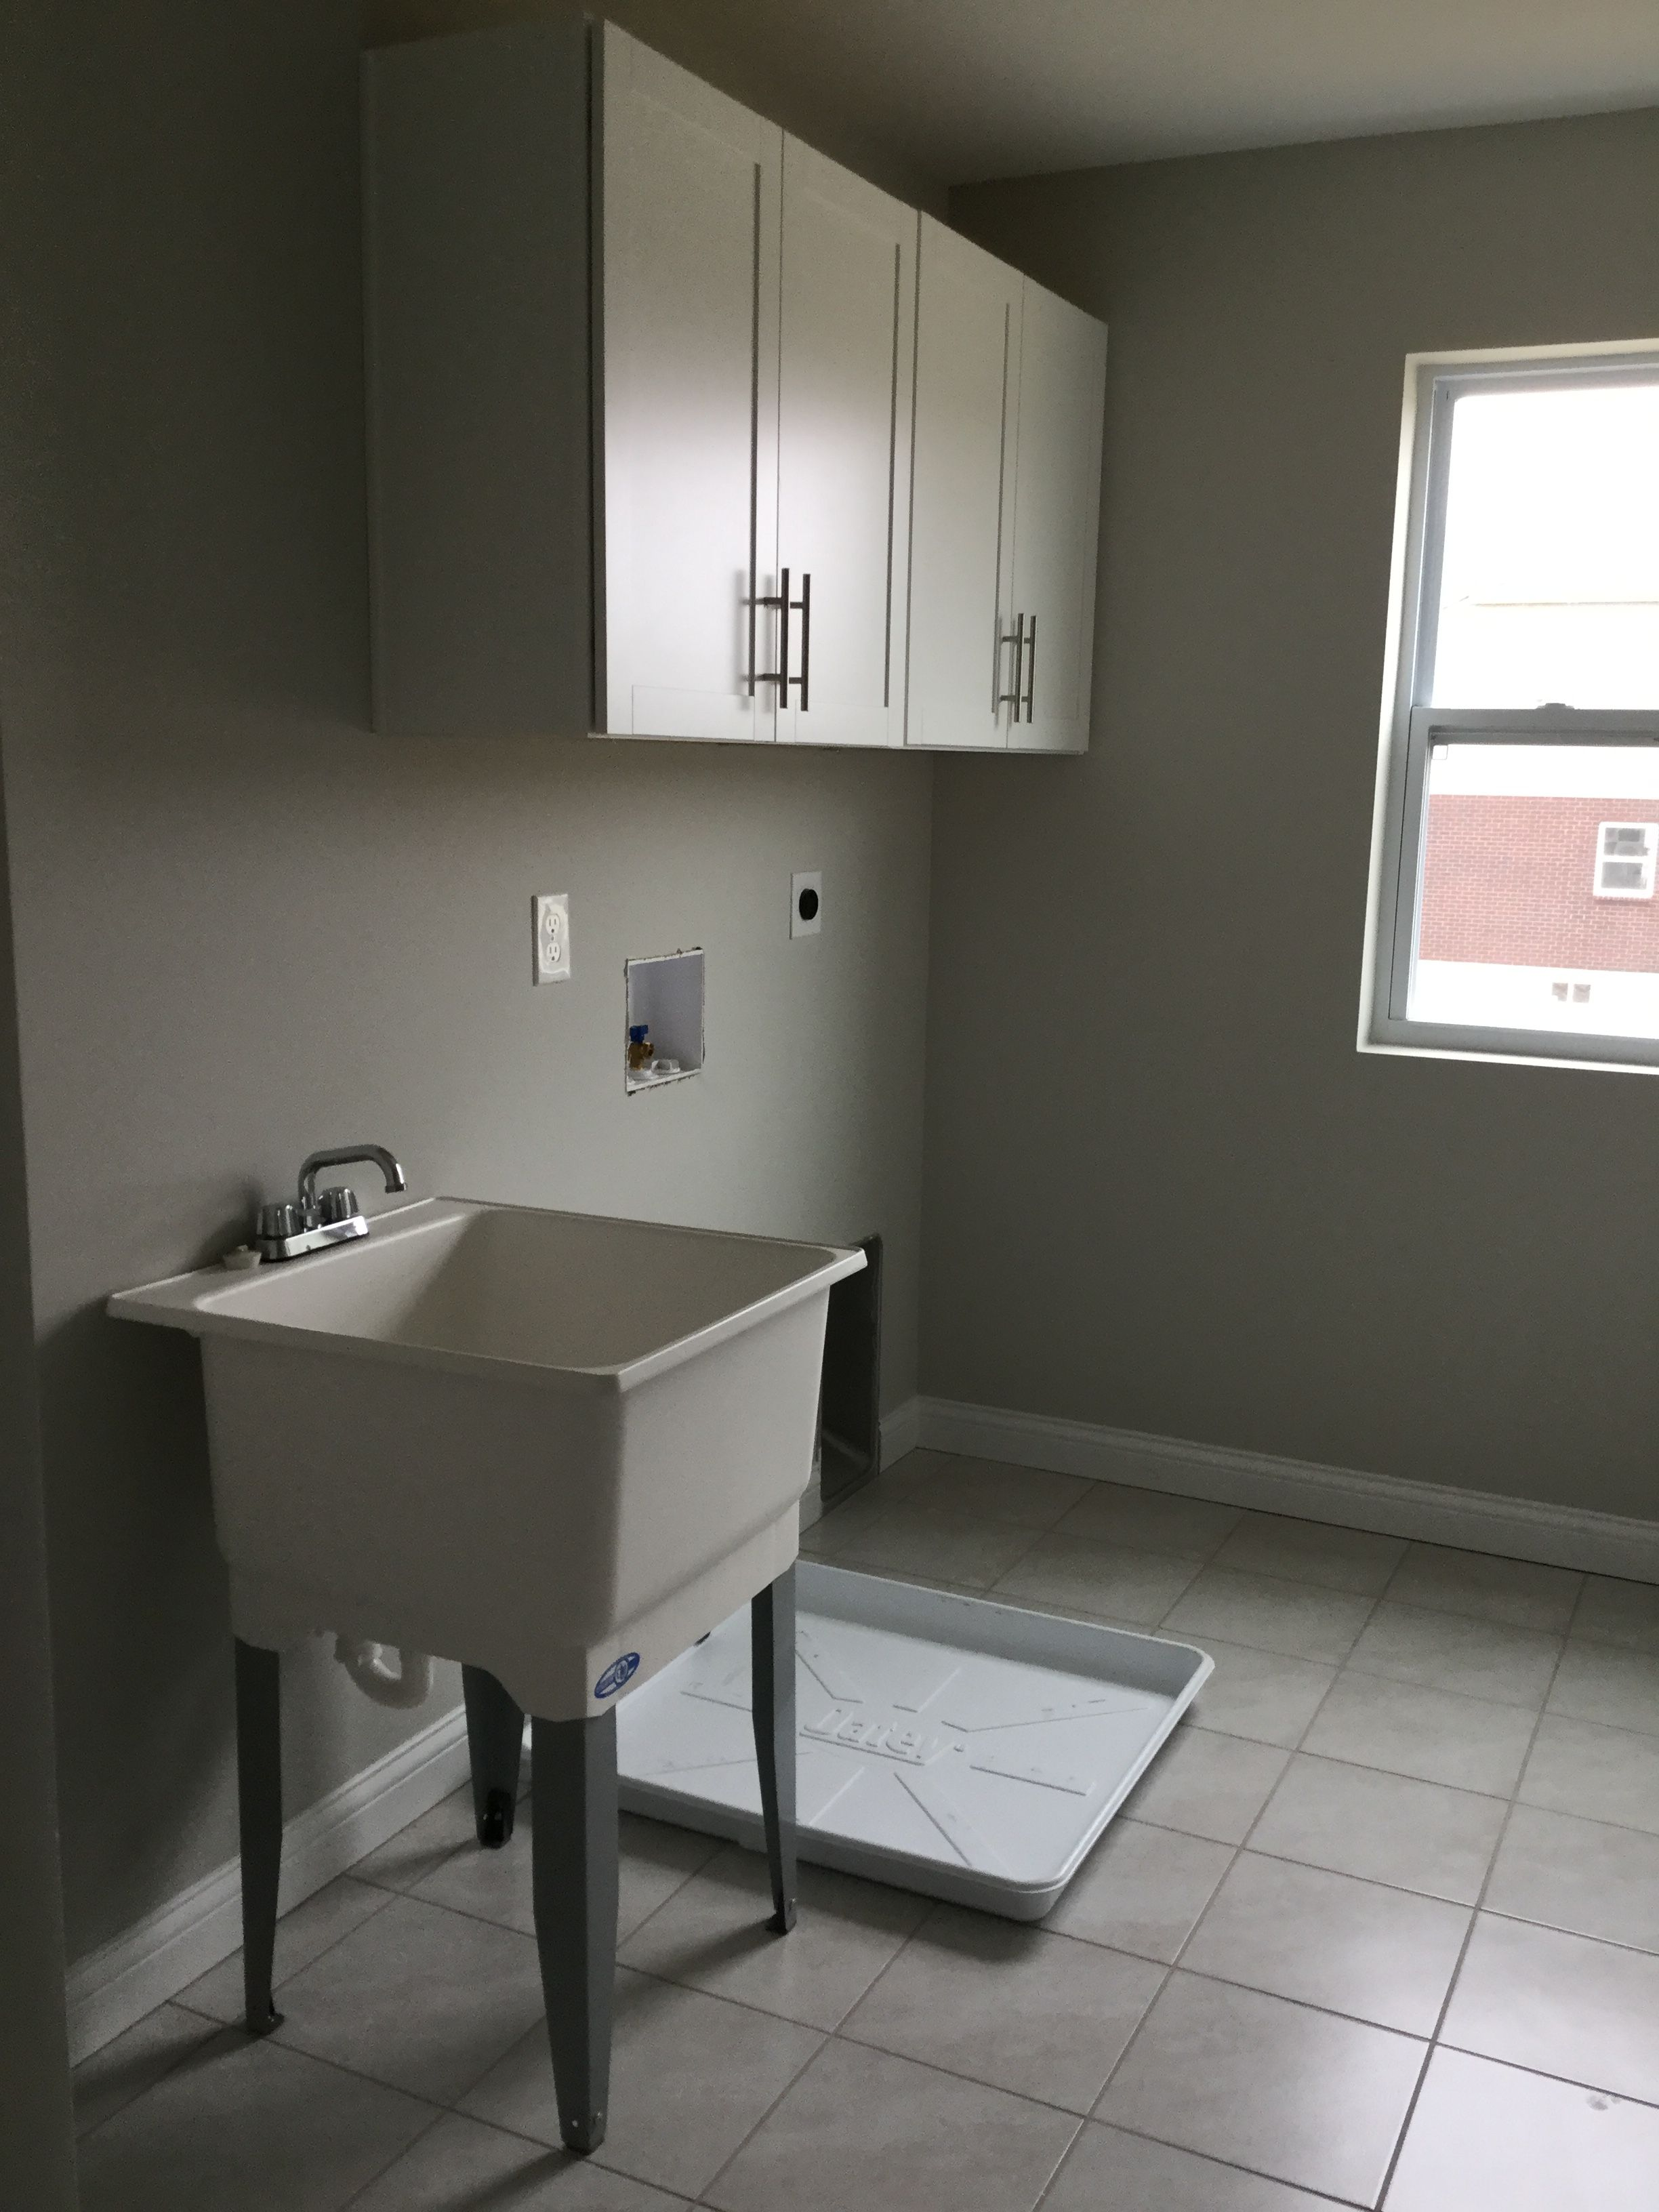 Best Brellin White Cabinets With Laundry Tub In Laundry Room 400 x 300